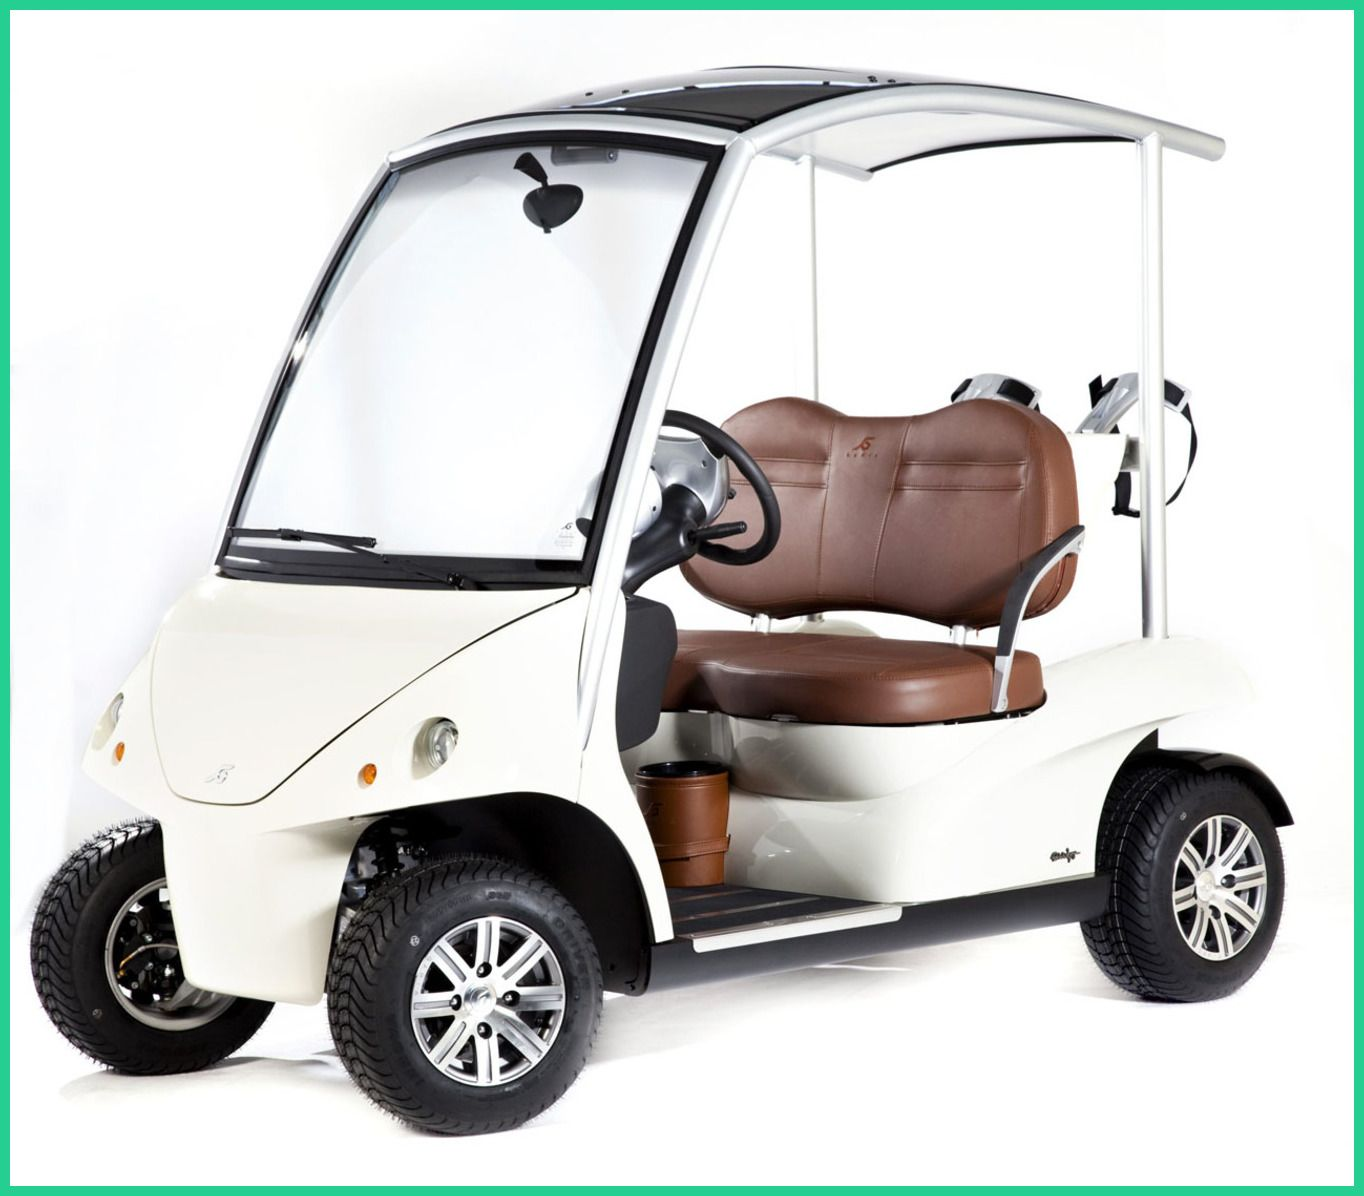 Golf Carts - Oil Mix For the Harley Davidson Golf Cart ** Check this on golf girls, golf handicap, golf accessories, golf tools, golf cartoons, golf trolley, golf machine, golf words, golf players, golf hitting nets, golf buggy, golf games, golf card,